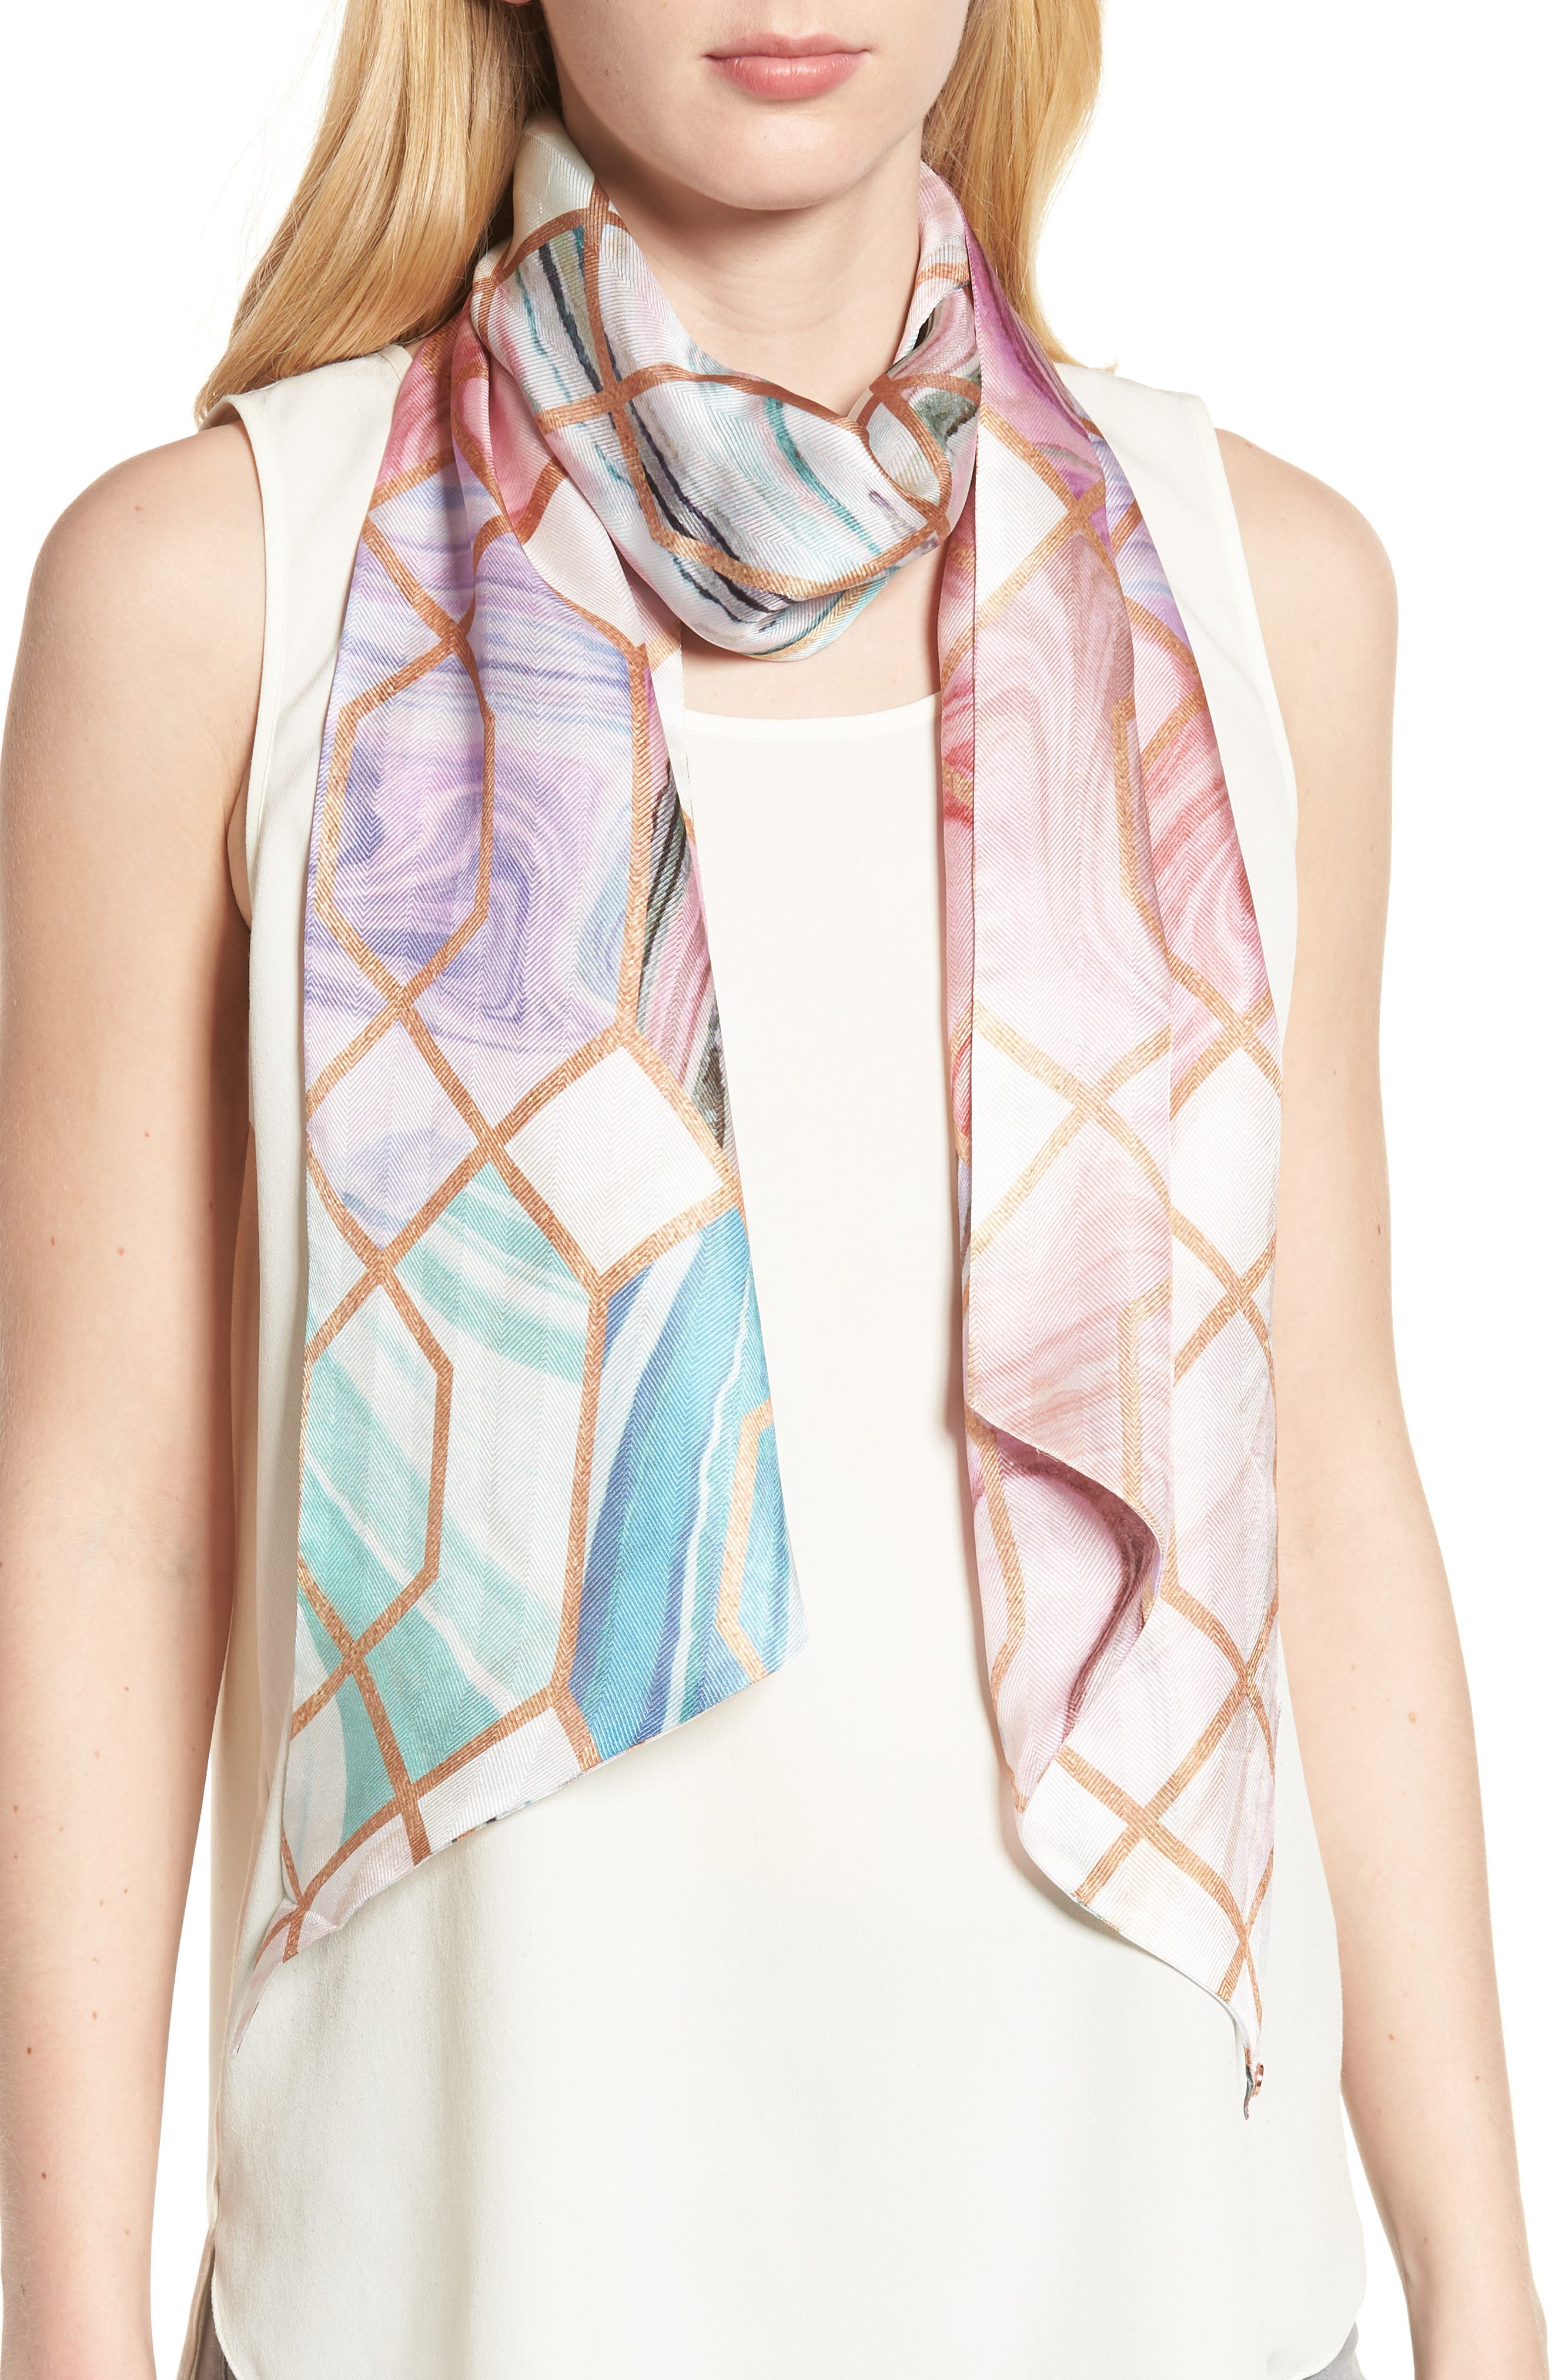 Adeelee - Sea of Clouds Silk Scarf,                             Main thumbnail 1, color,                             White